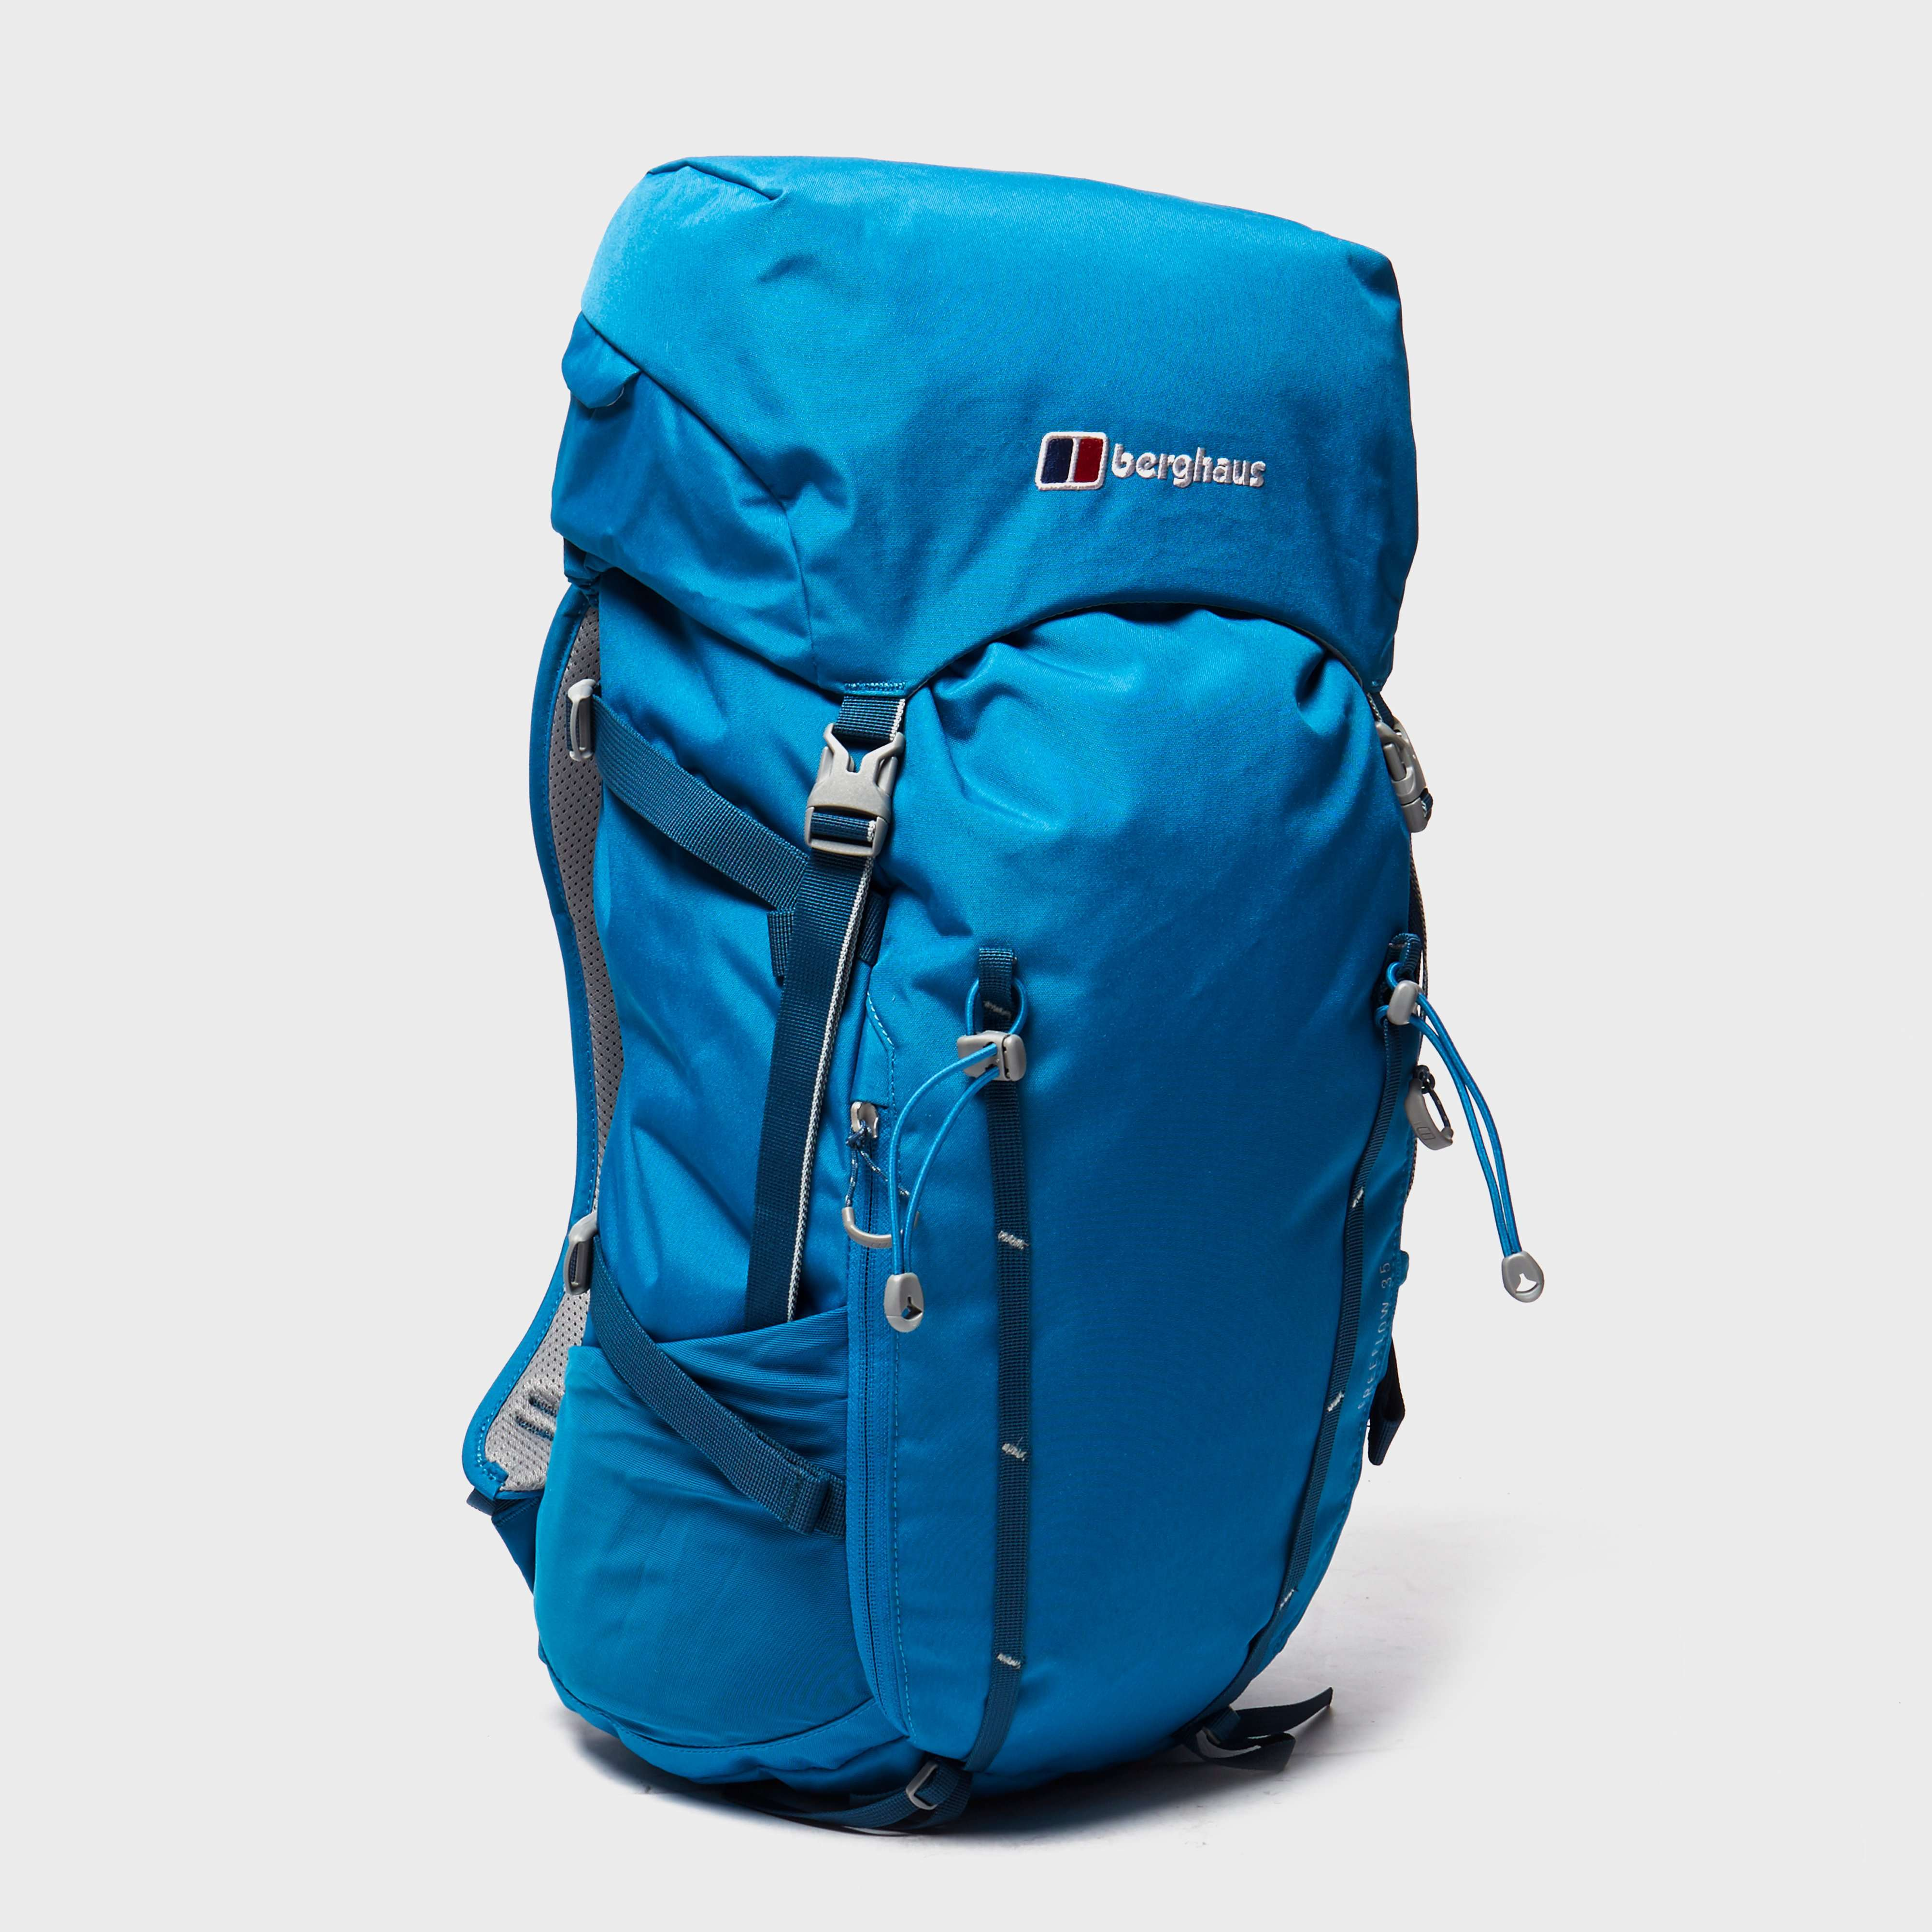 BERGHAUS Freeflow 35 Litre Backpack